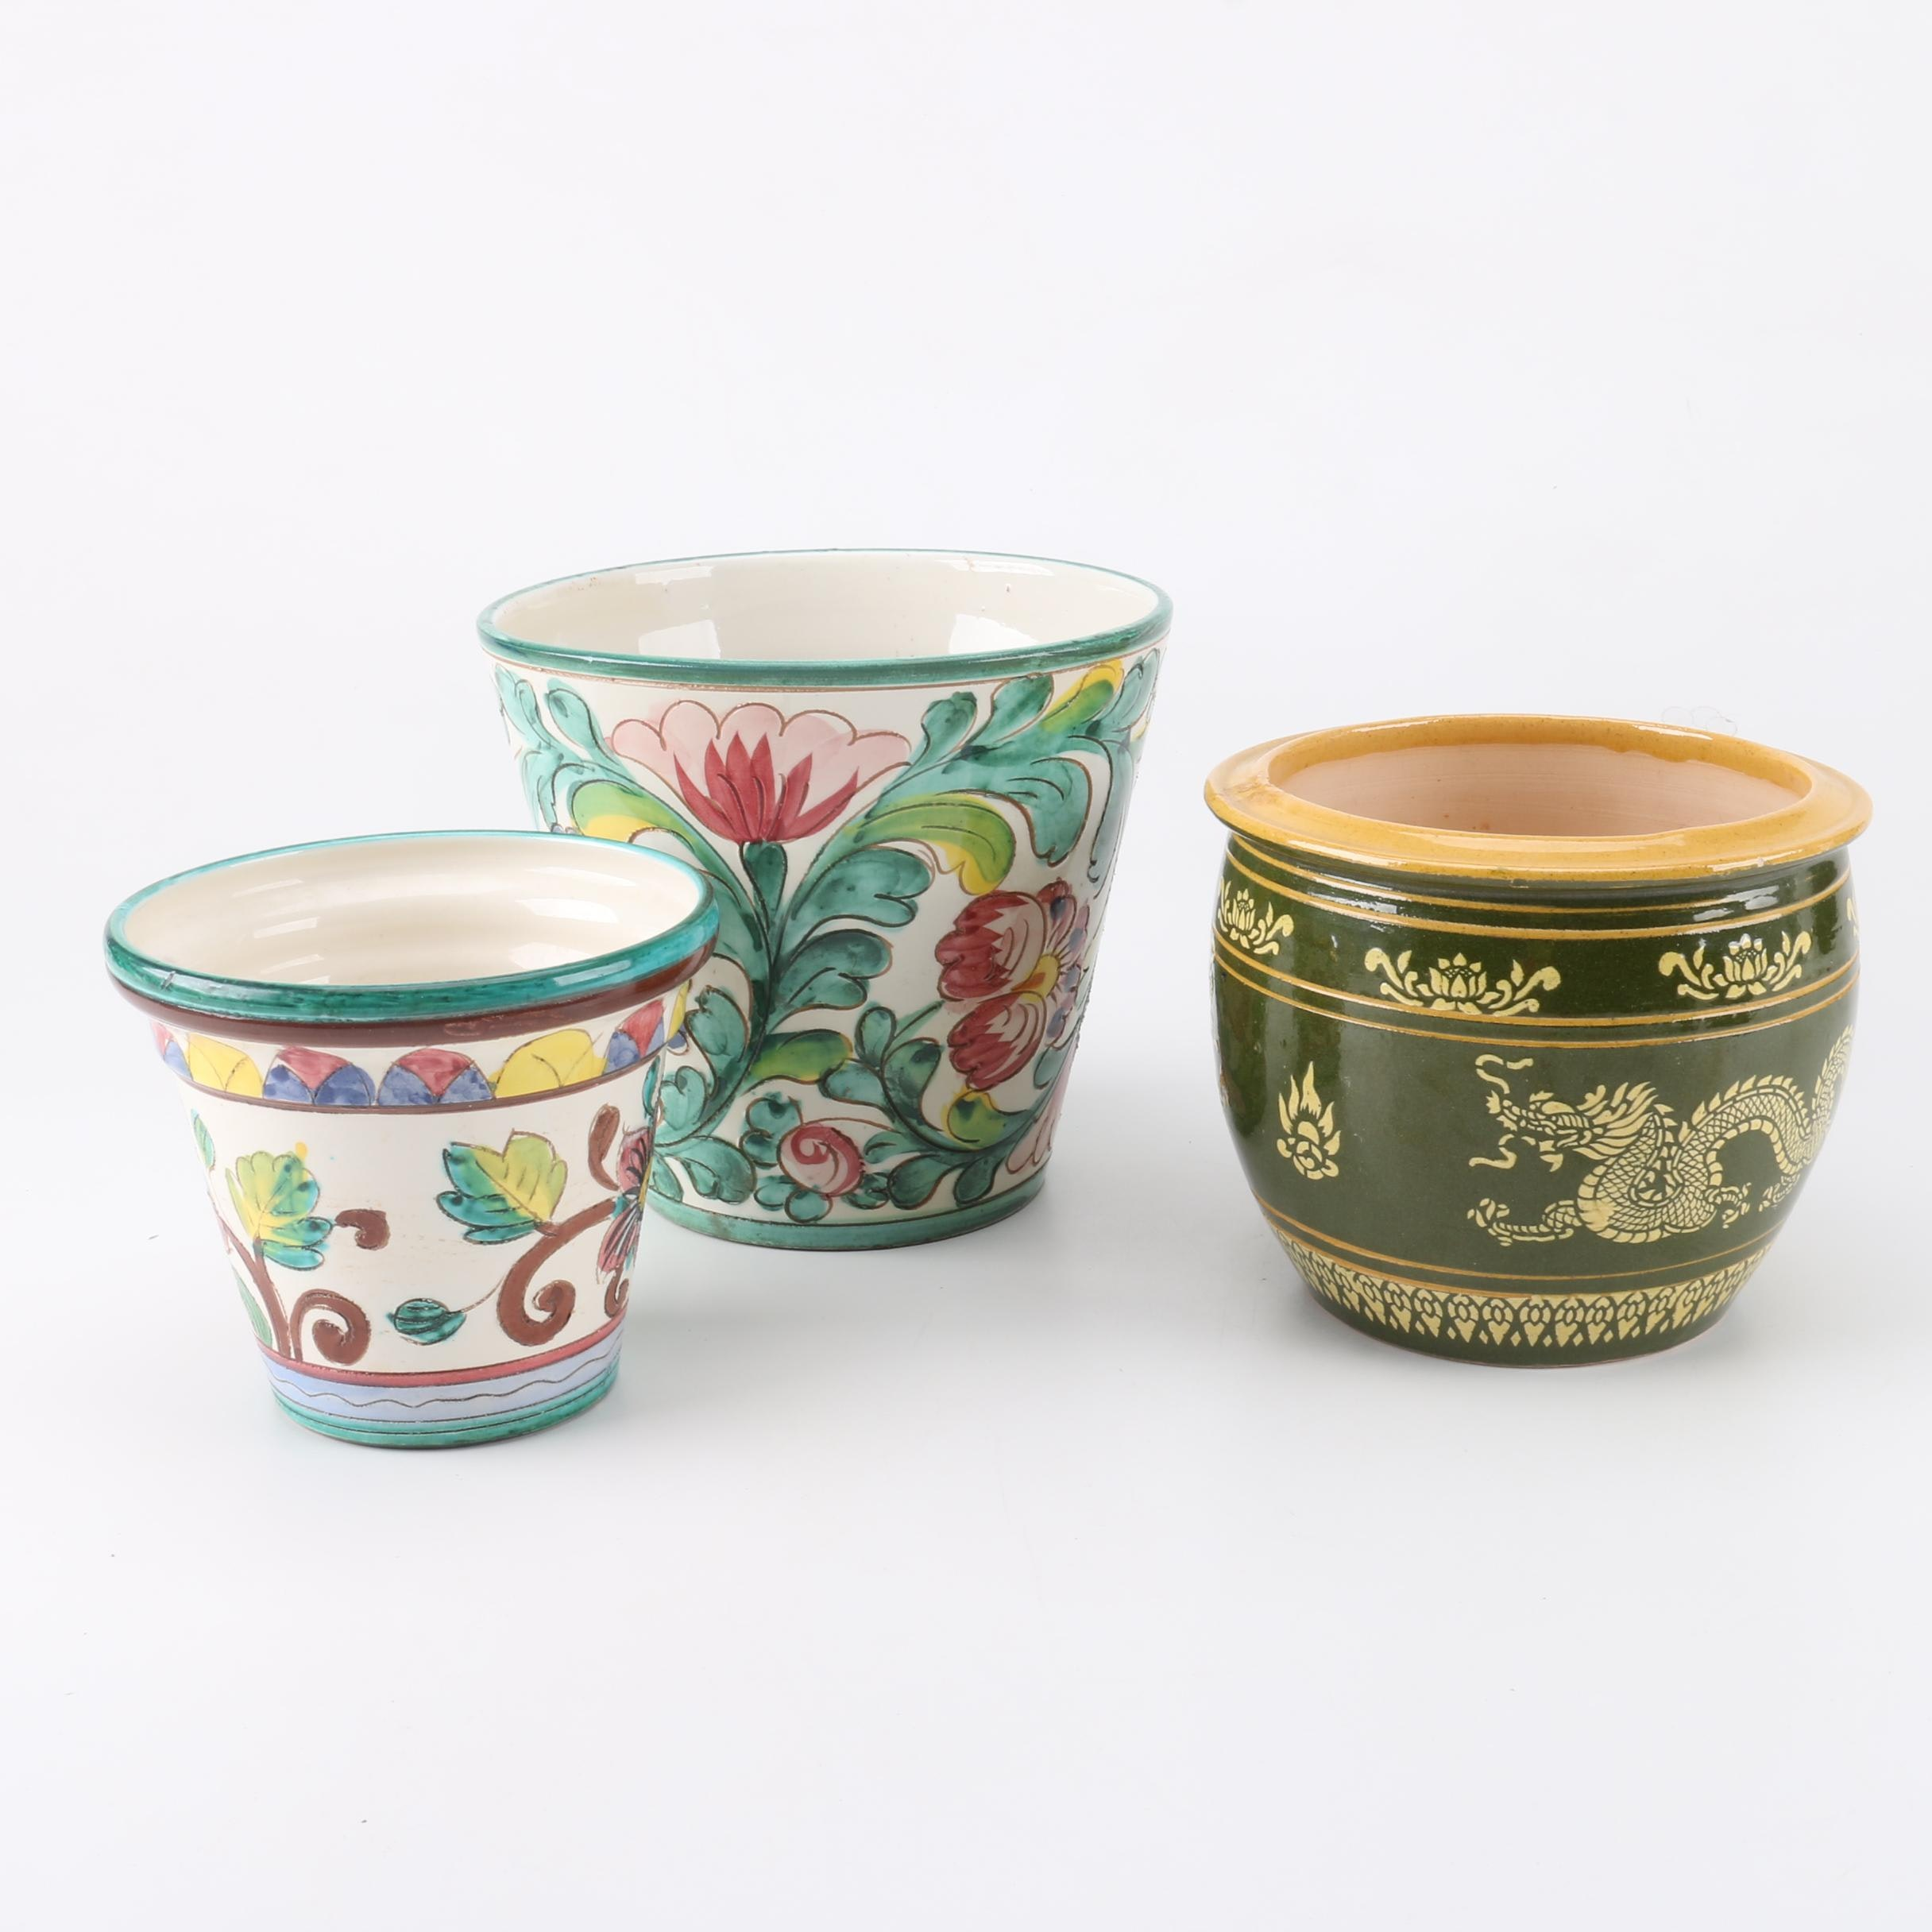 Italian Hand-Painted and Ceramic Art Pottery Planters